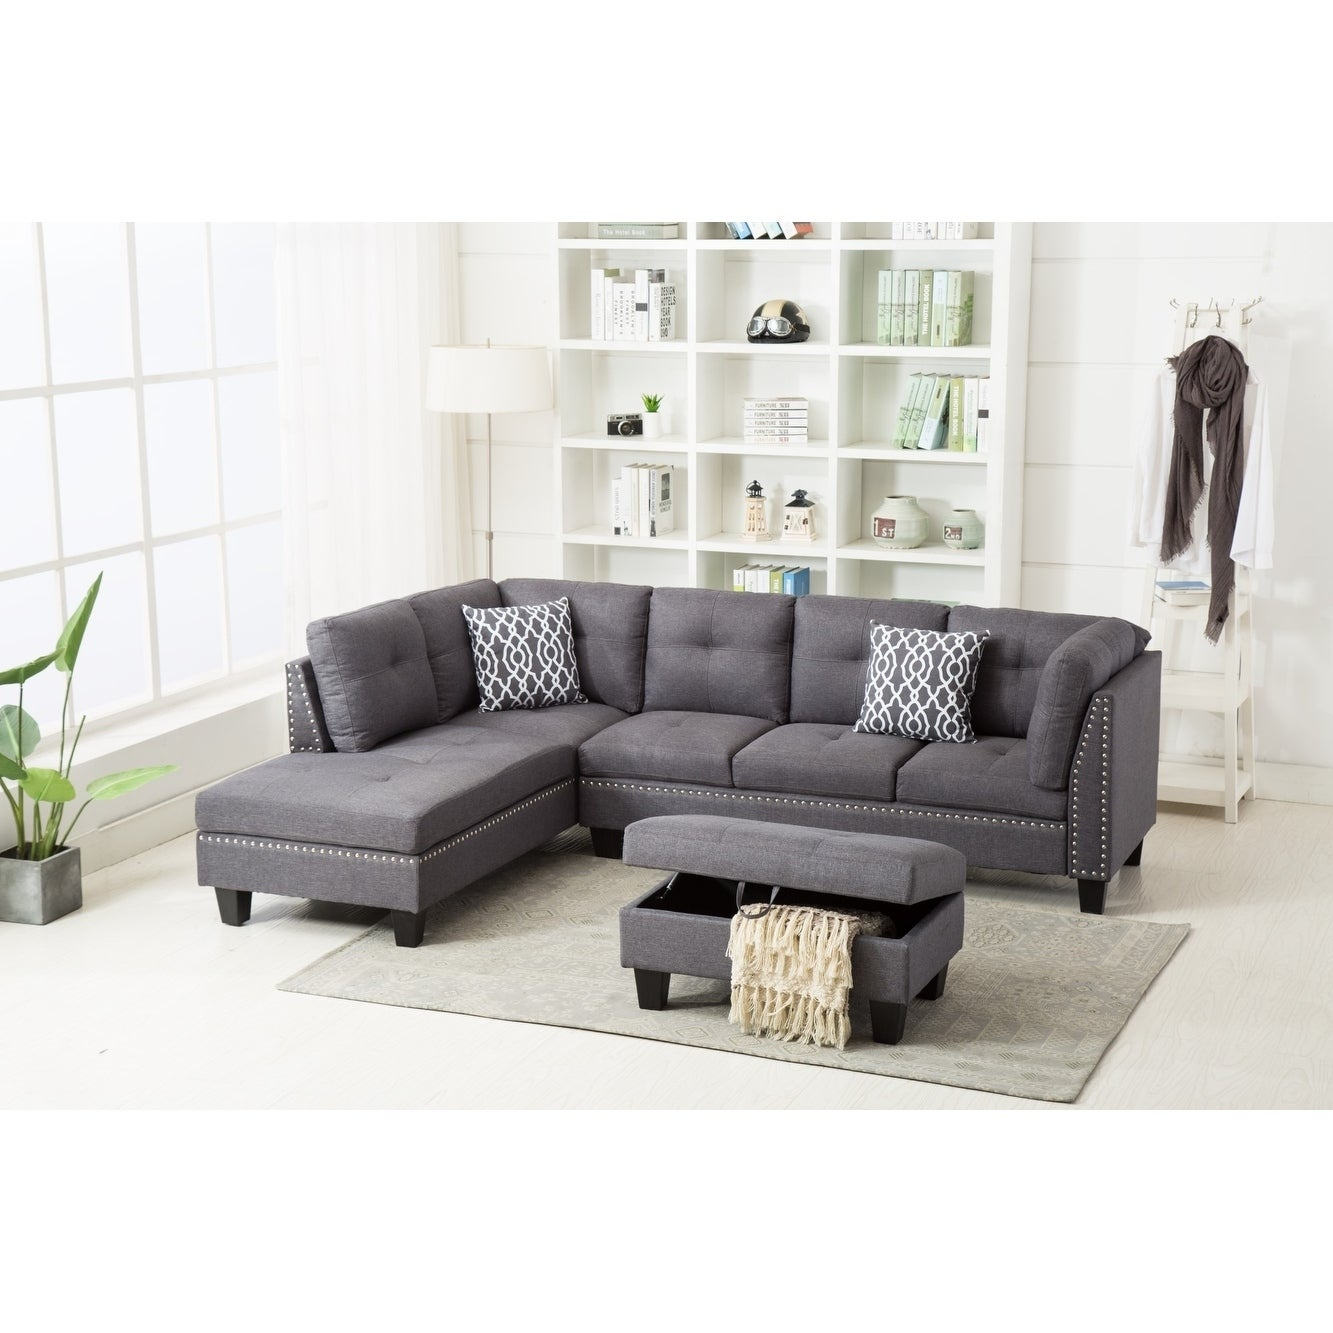 Shop Nail Trim Linen Fabric Sectional Sofa with Storage Ottoman ...